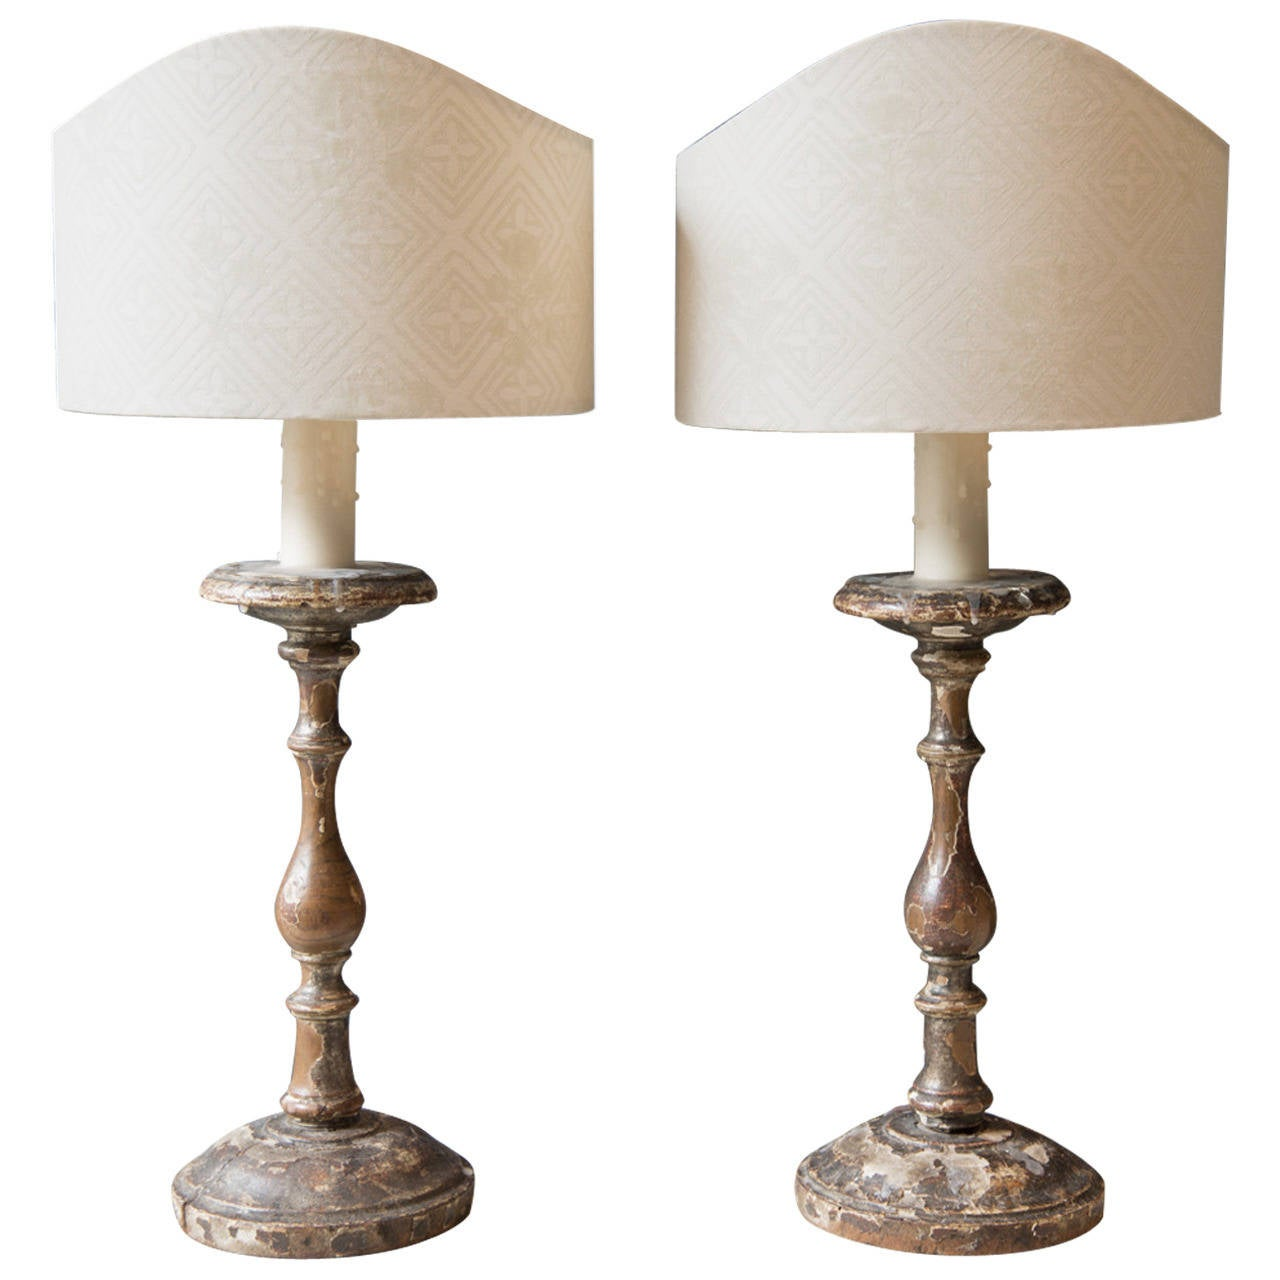 Pair of 18th Century Italian Wood Candlestick Lamps with Custom ...